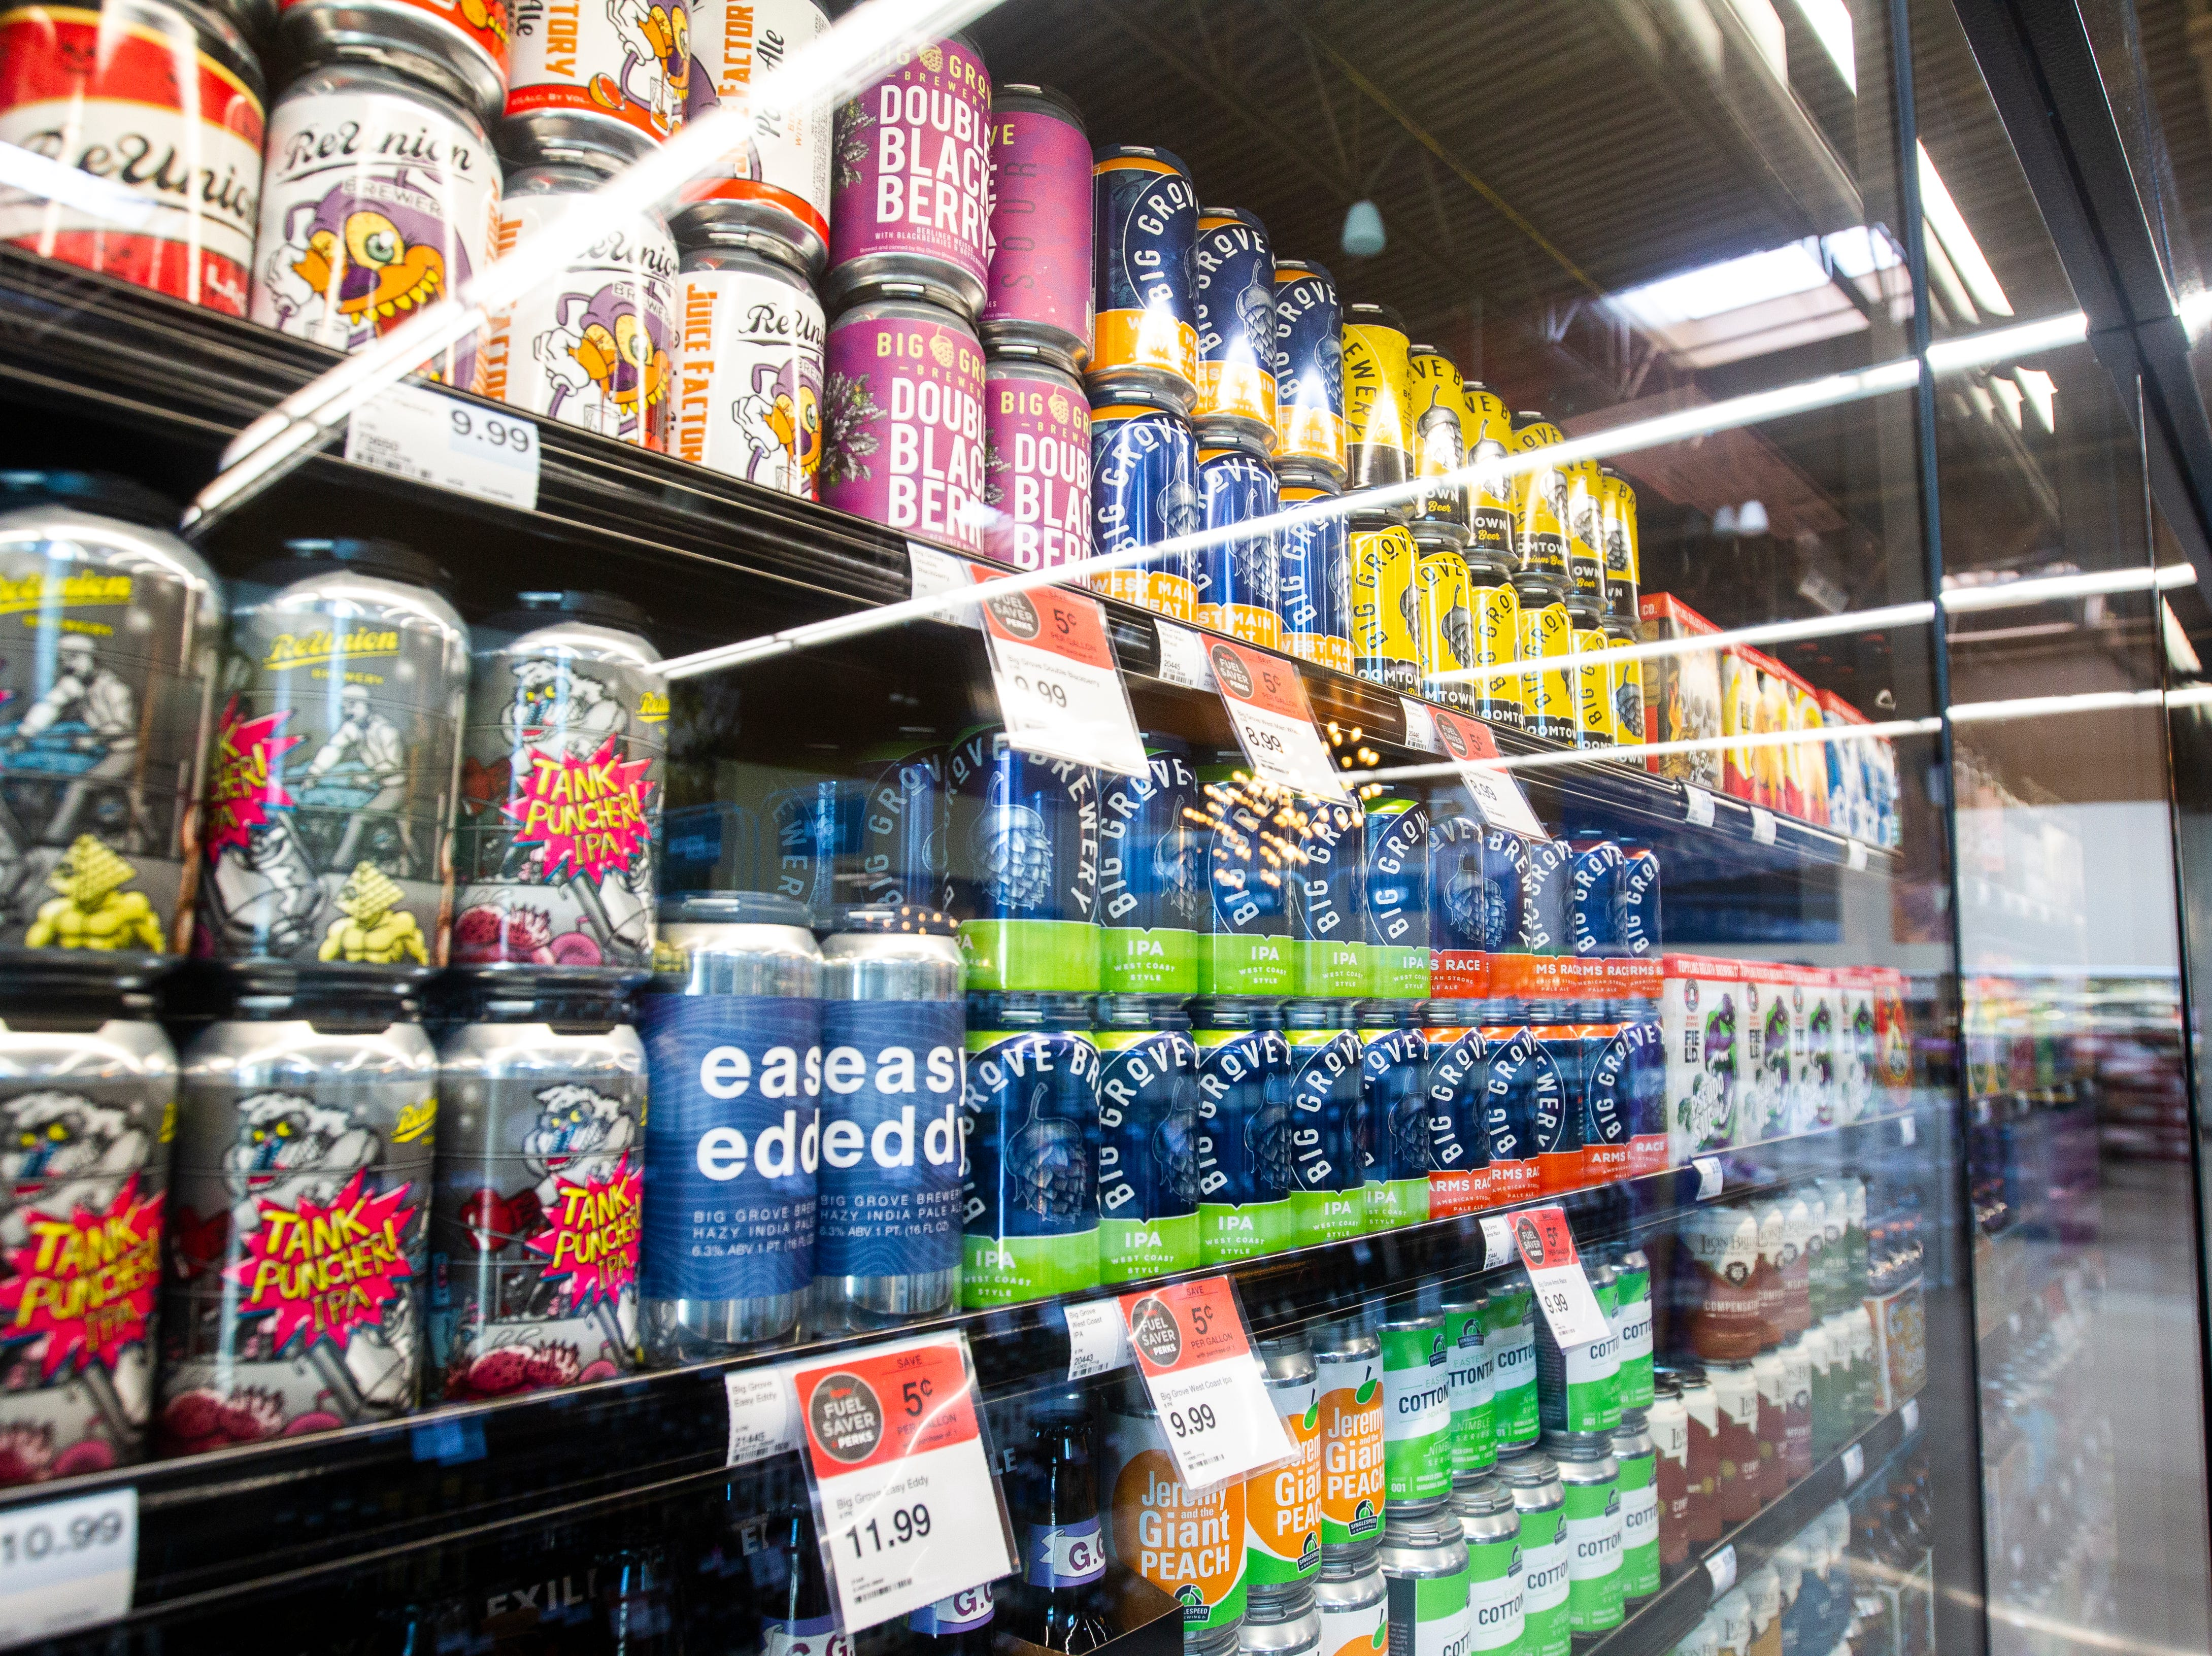 Big Grove Brewery cans are seen in a cooler at a new Hy-Vee on Monday, Oct. 15, 2018, along Crosspark Road in Coralville, Iowa.